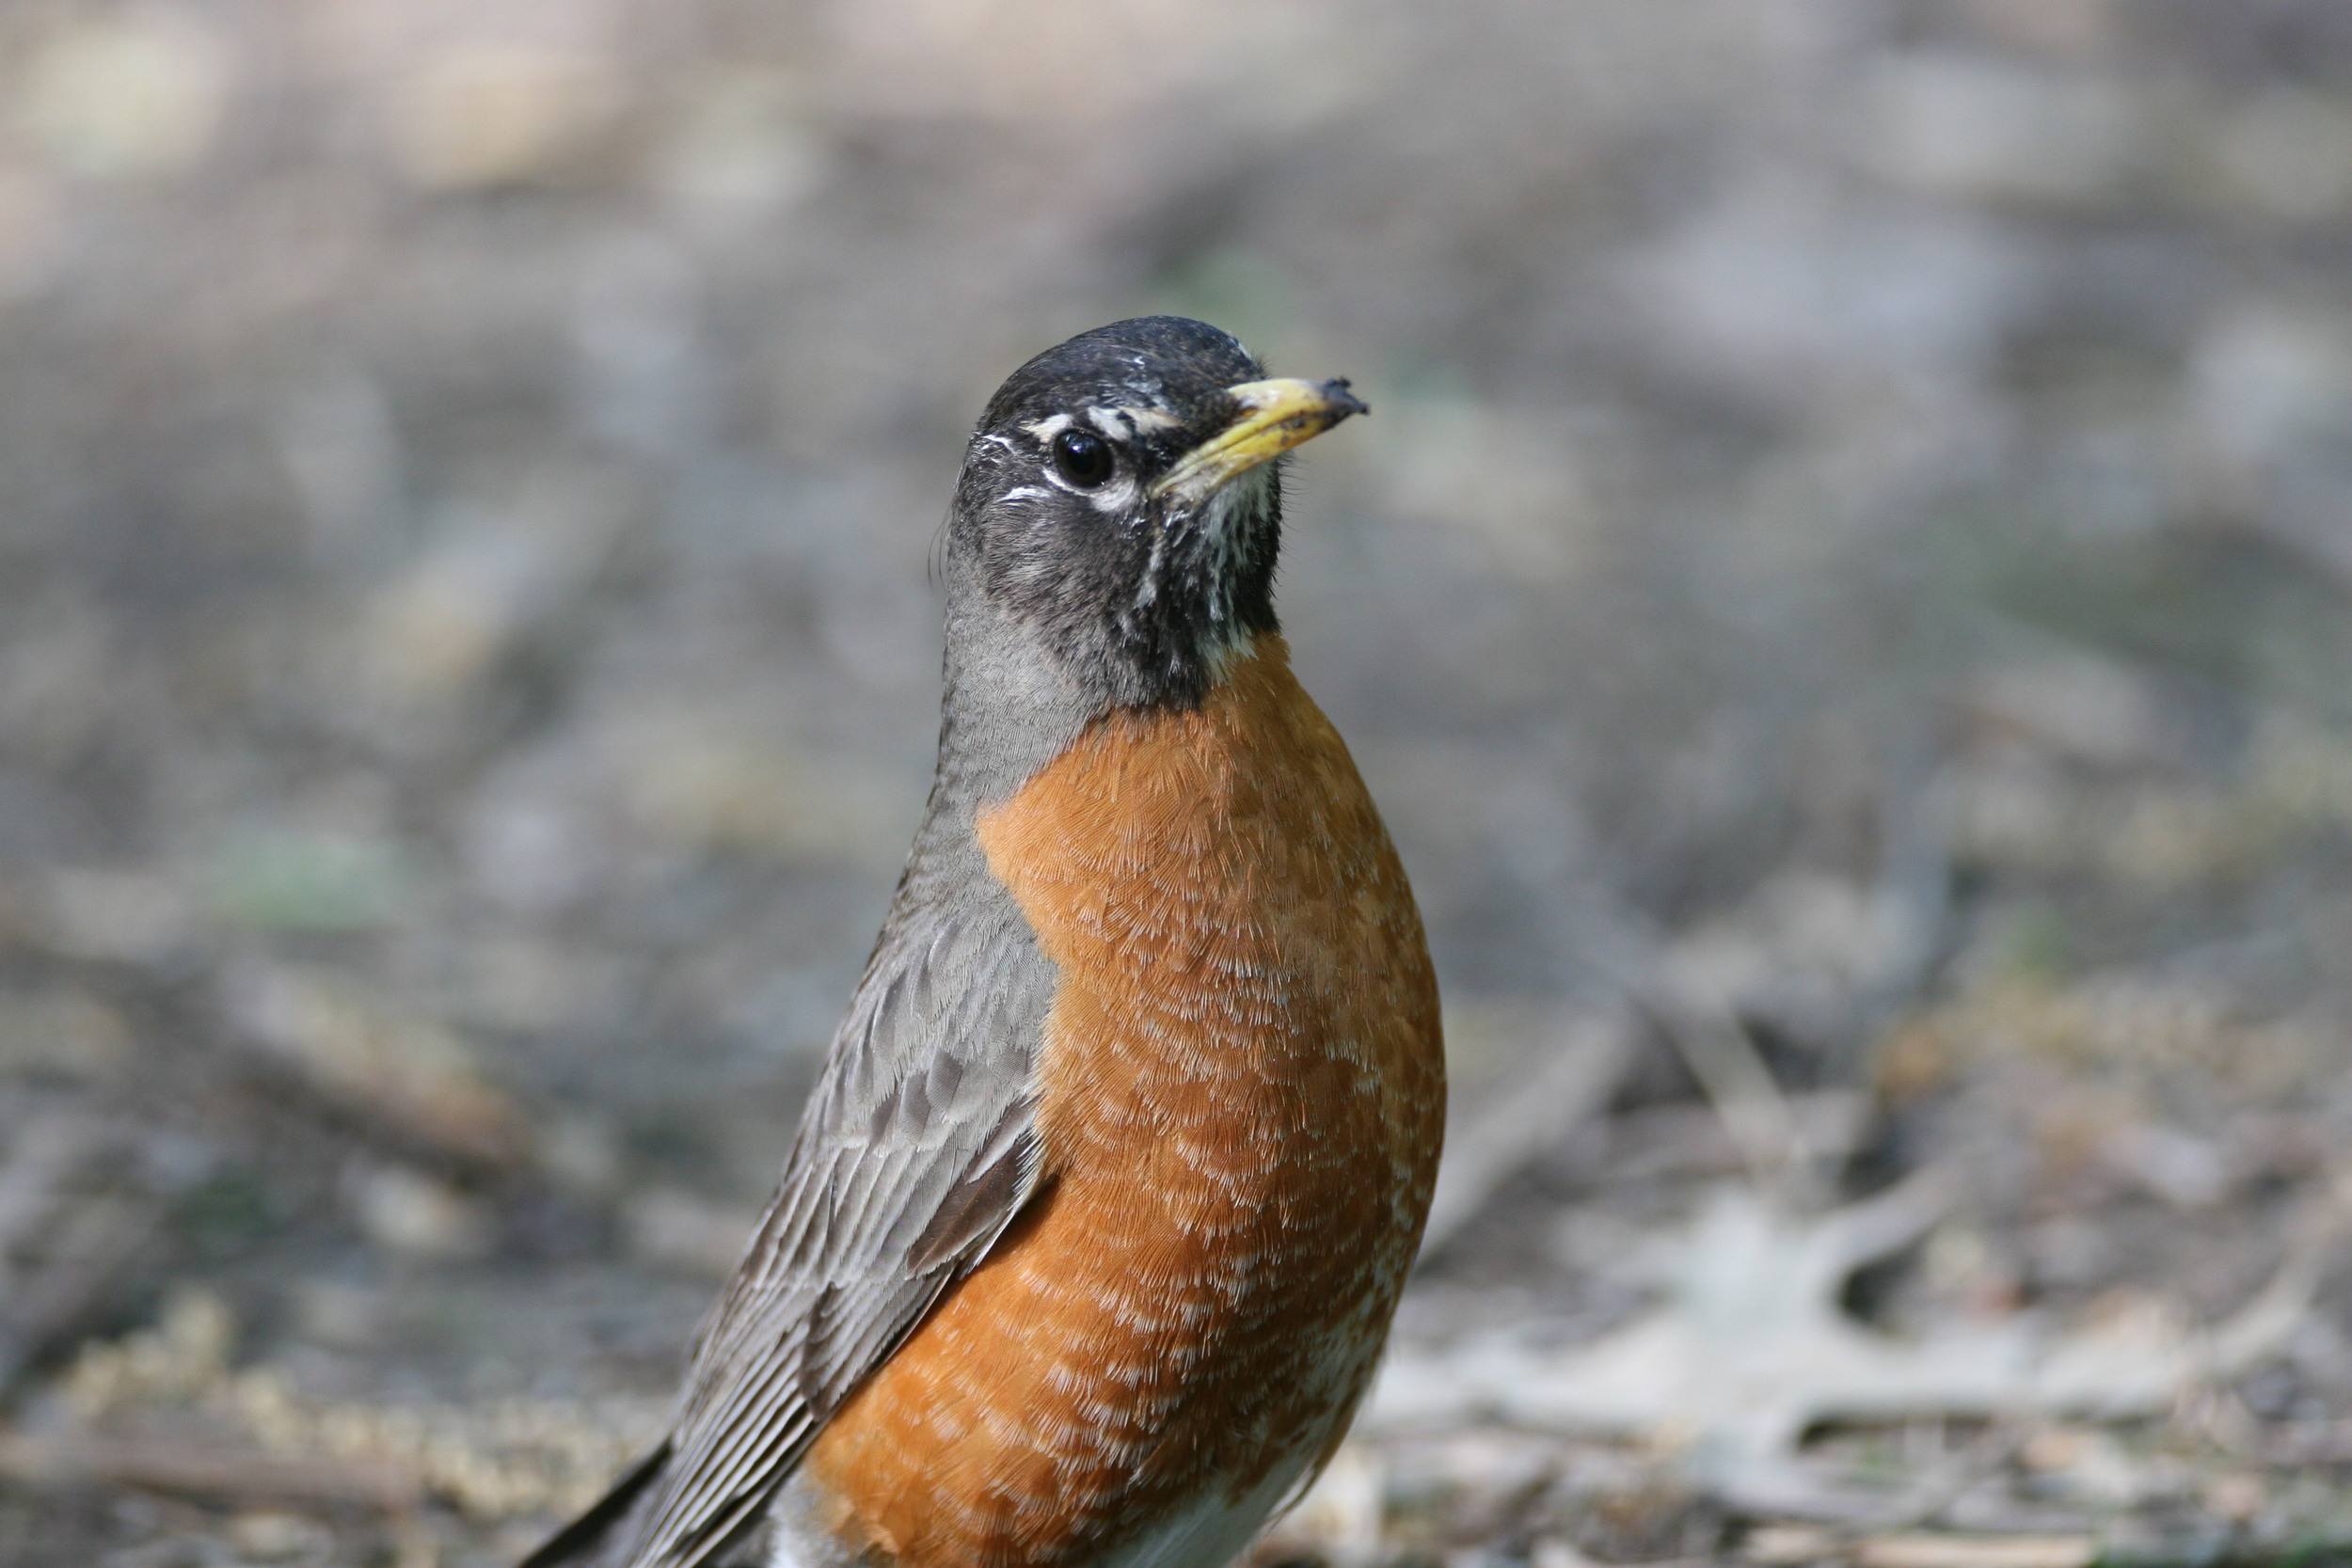 Adult American Robins have an incomplete or broken eye-ring, in case you were wondering.